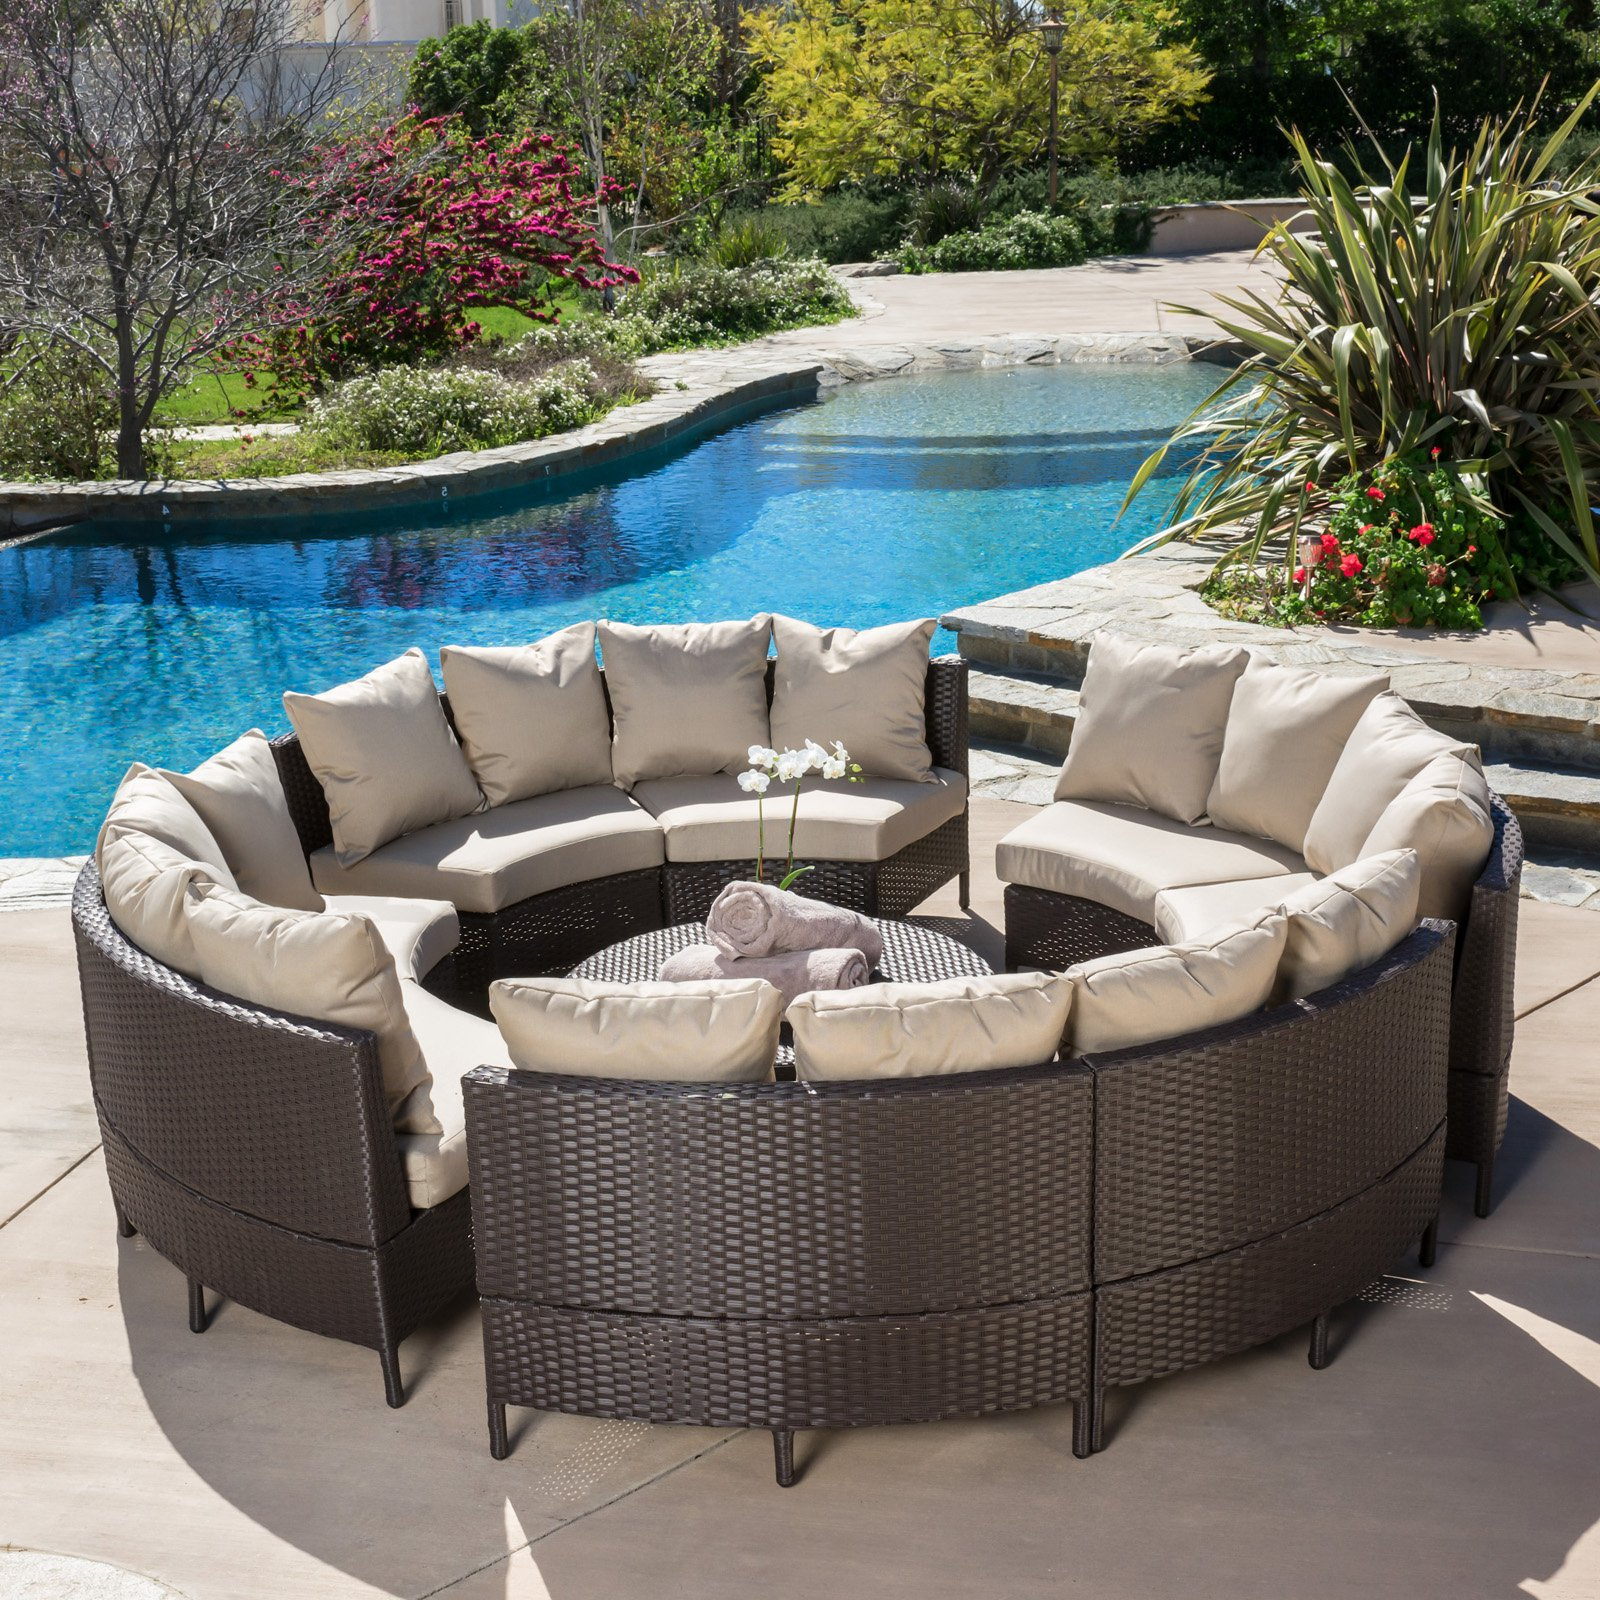 Fashionable Avalon Wicker 10 Piece Patio Conversation Set With Cushions – Walmart Intended For Outdoor Wicker Plastic Half Moon Leaf Shape Porch Swings (View 5 of 25)